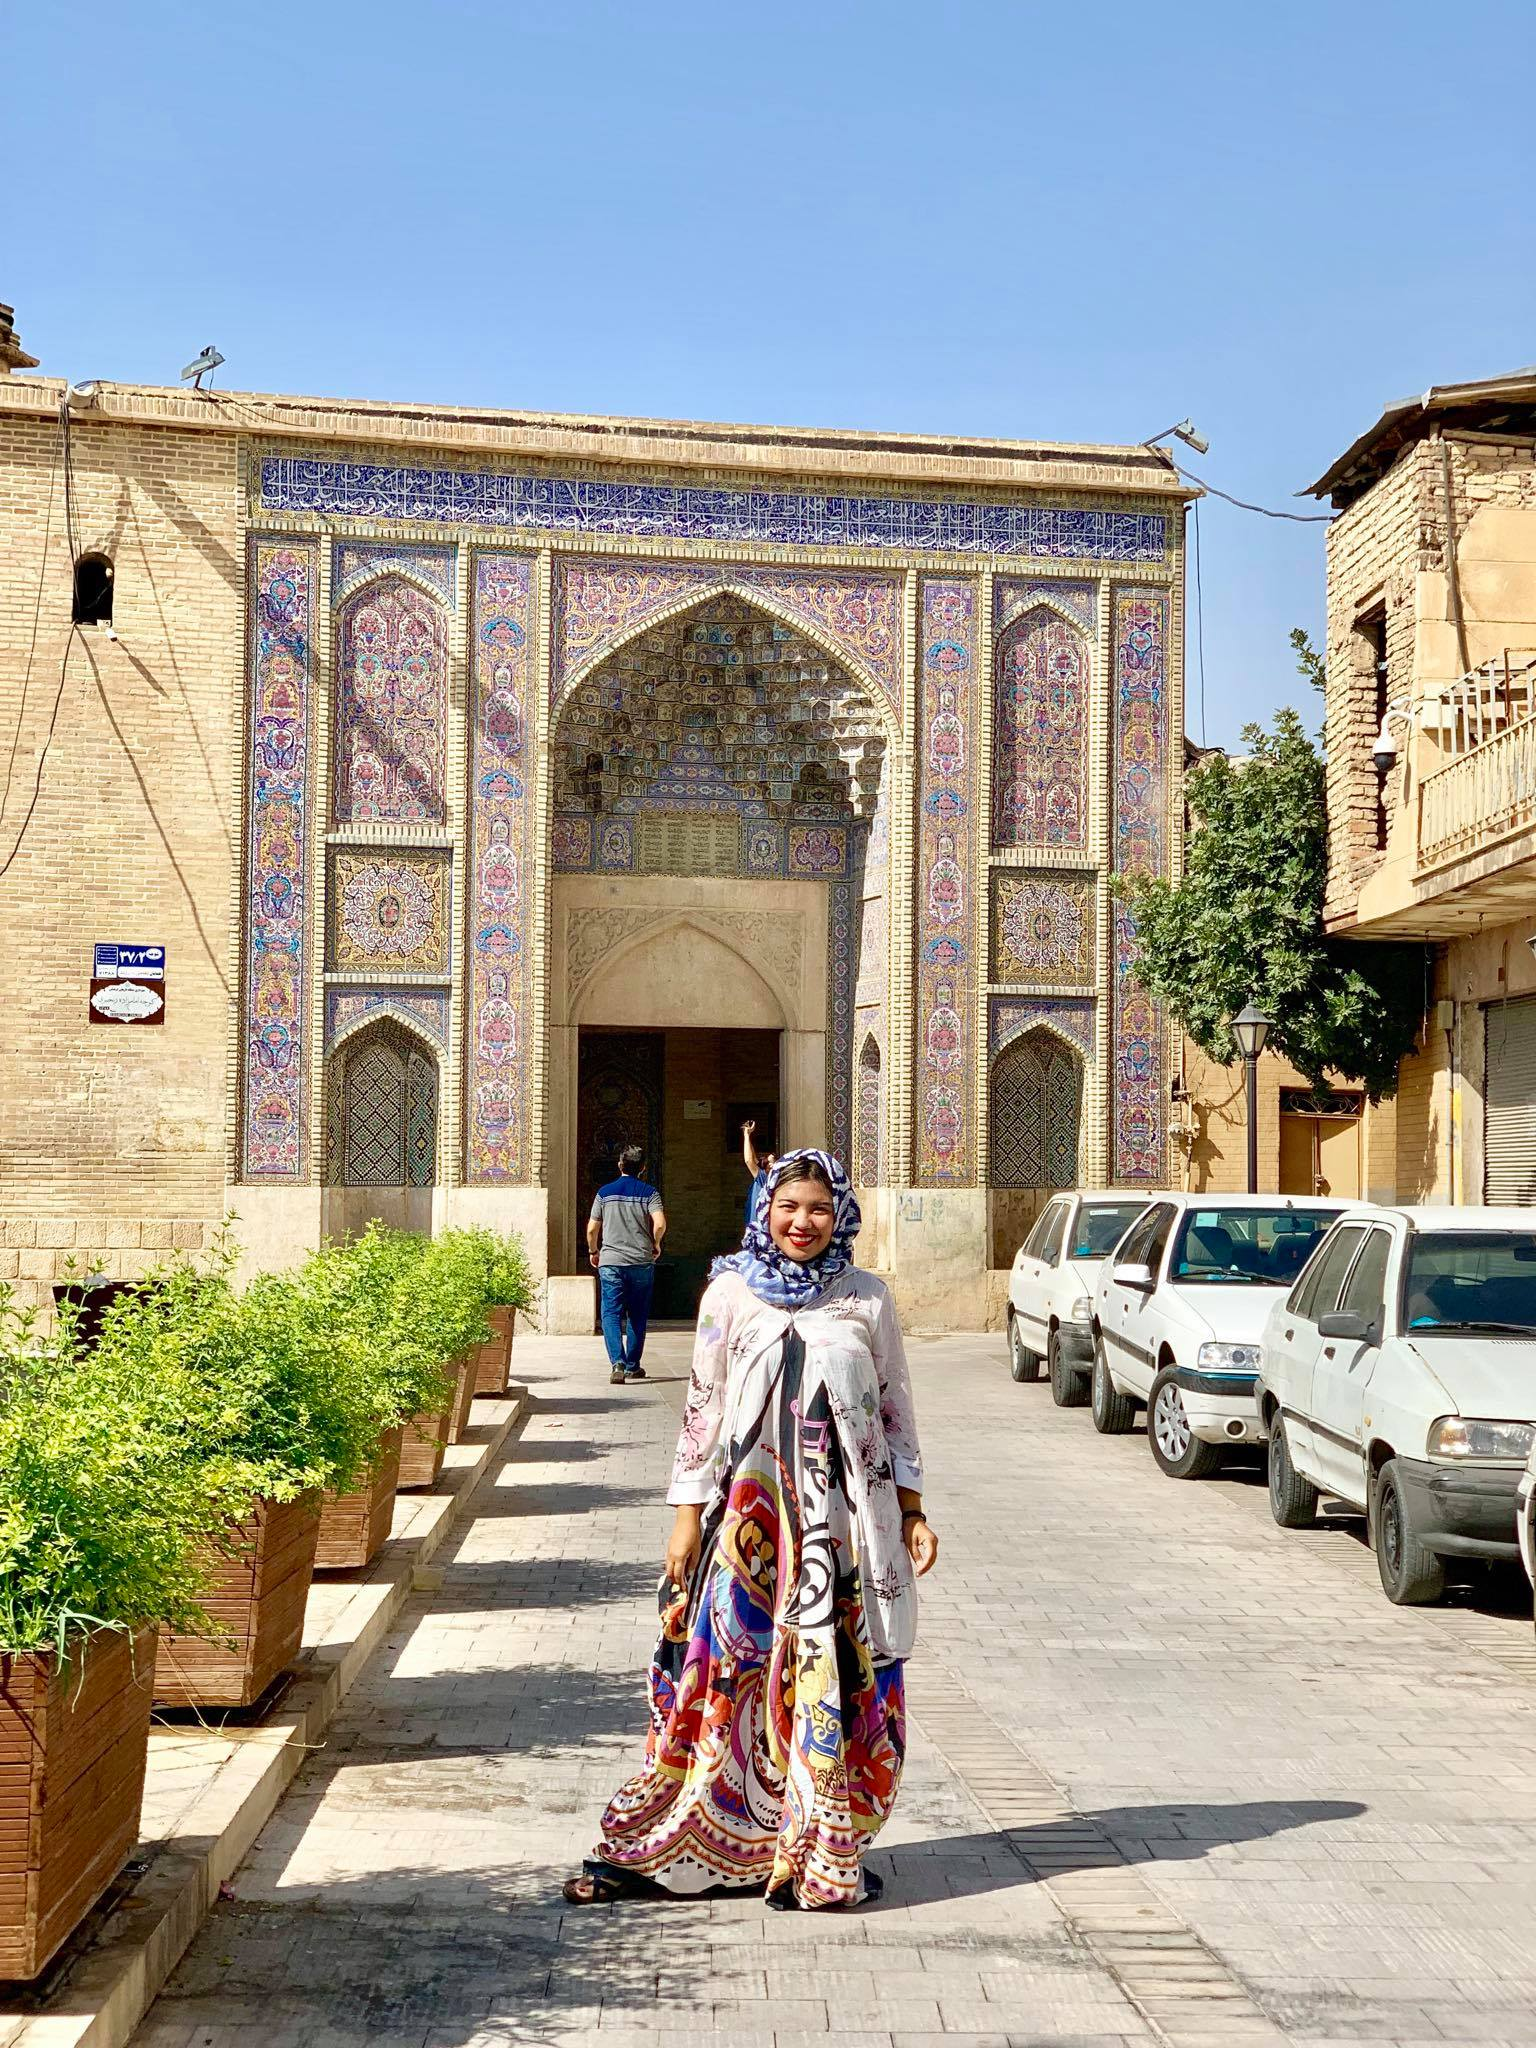 Kach Solo Travels in 2019 Full day tour of Shiraz23.jpg